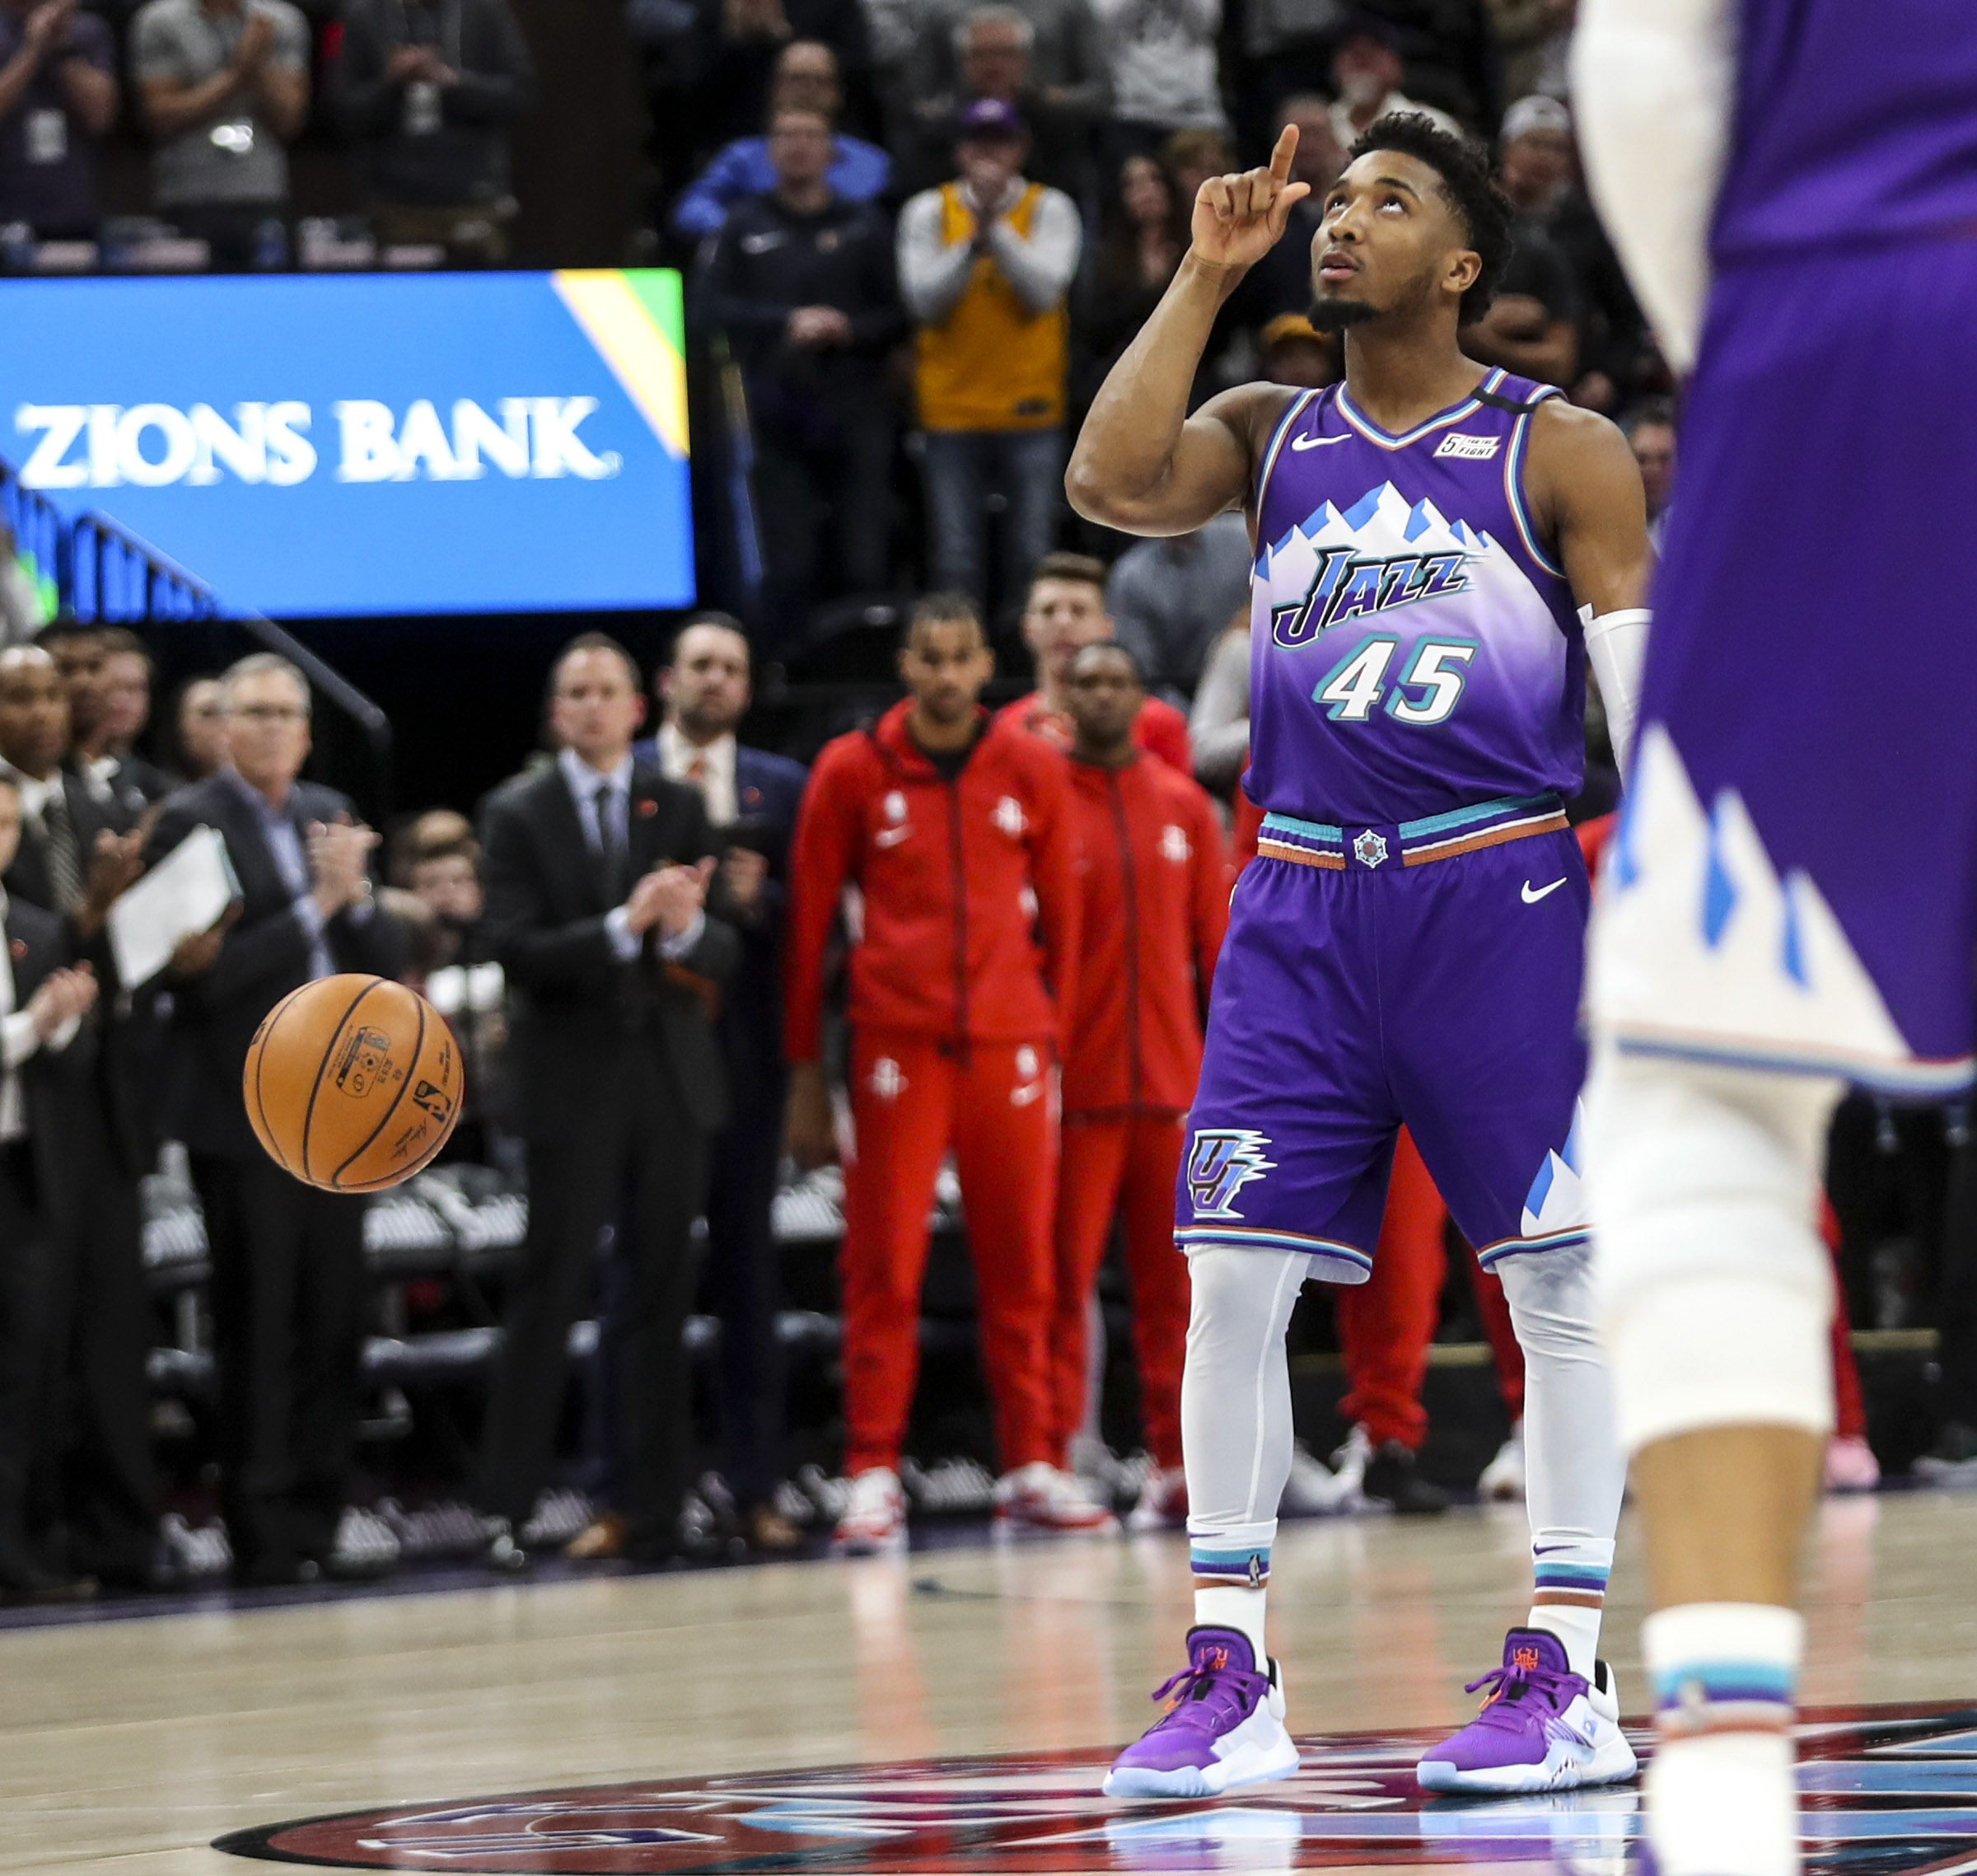 Utah Jazz guard Donovan Mitchell (45) lets the ball bounce away as he points up to the sky as the Jazz pay tribute to Kobe Bryant by letting the 24 second clock expire at the beginning of the game against the Houston Rockets at Vivint Arena in Salt Lake City on Monday, Jan. 27, 2020.